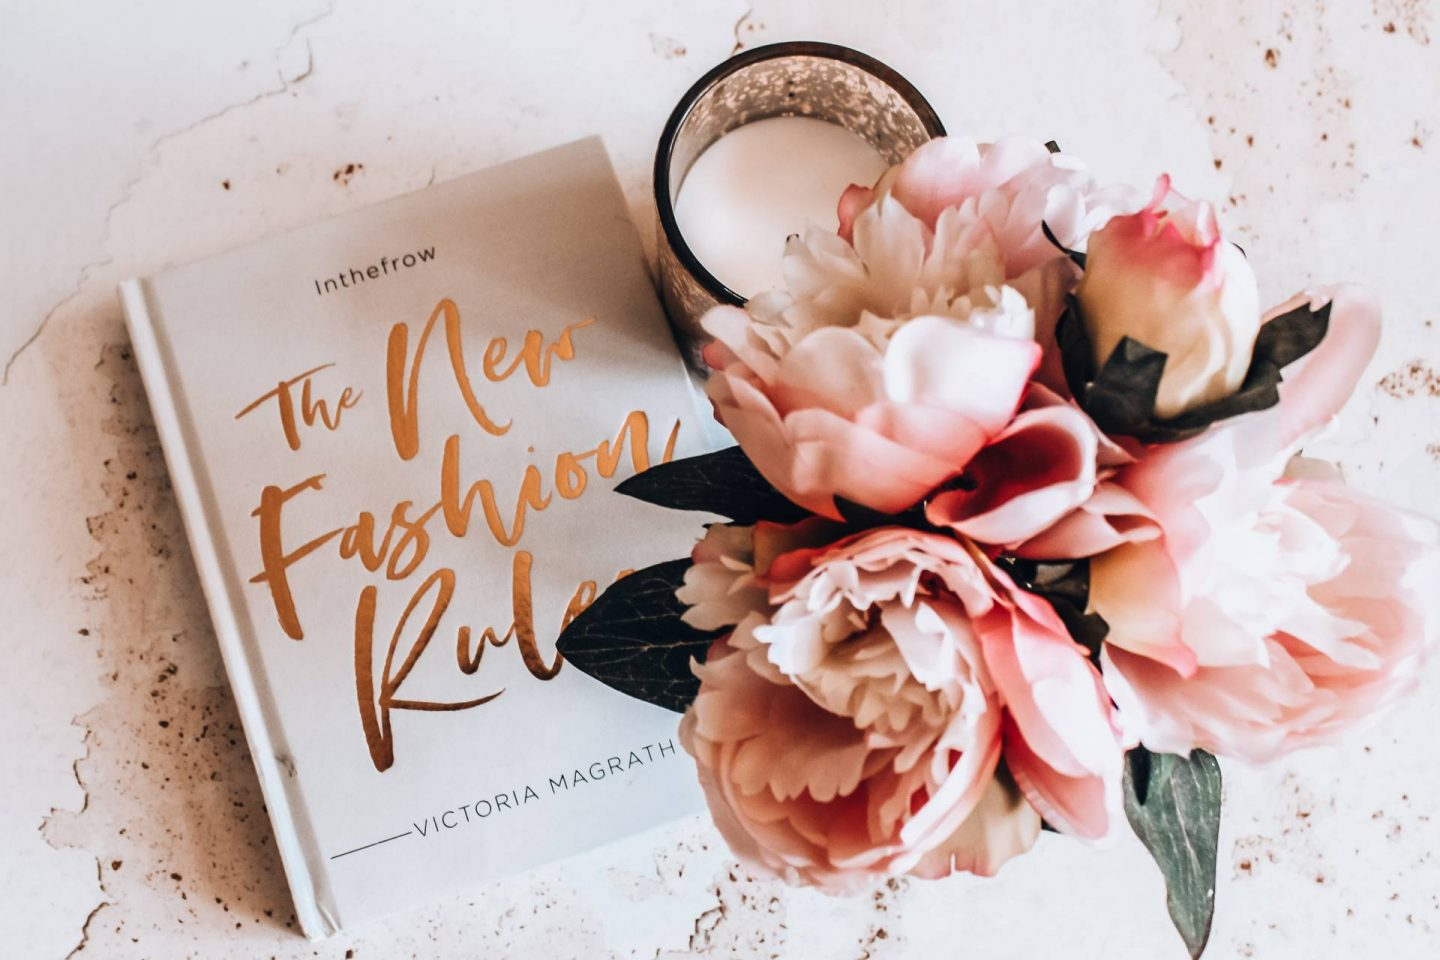 Inthefrow The New Fashion Rules book